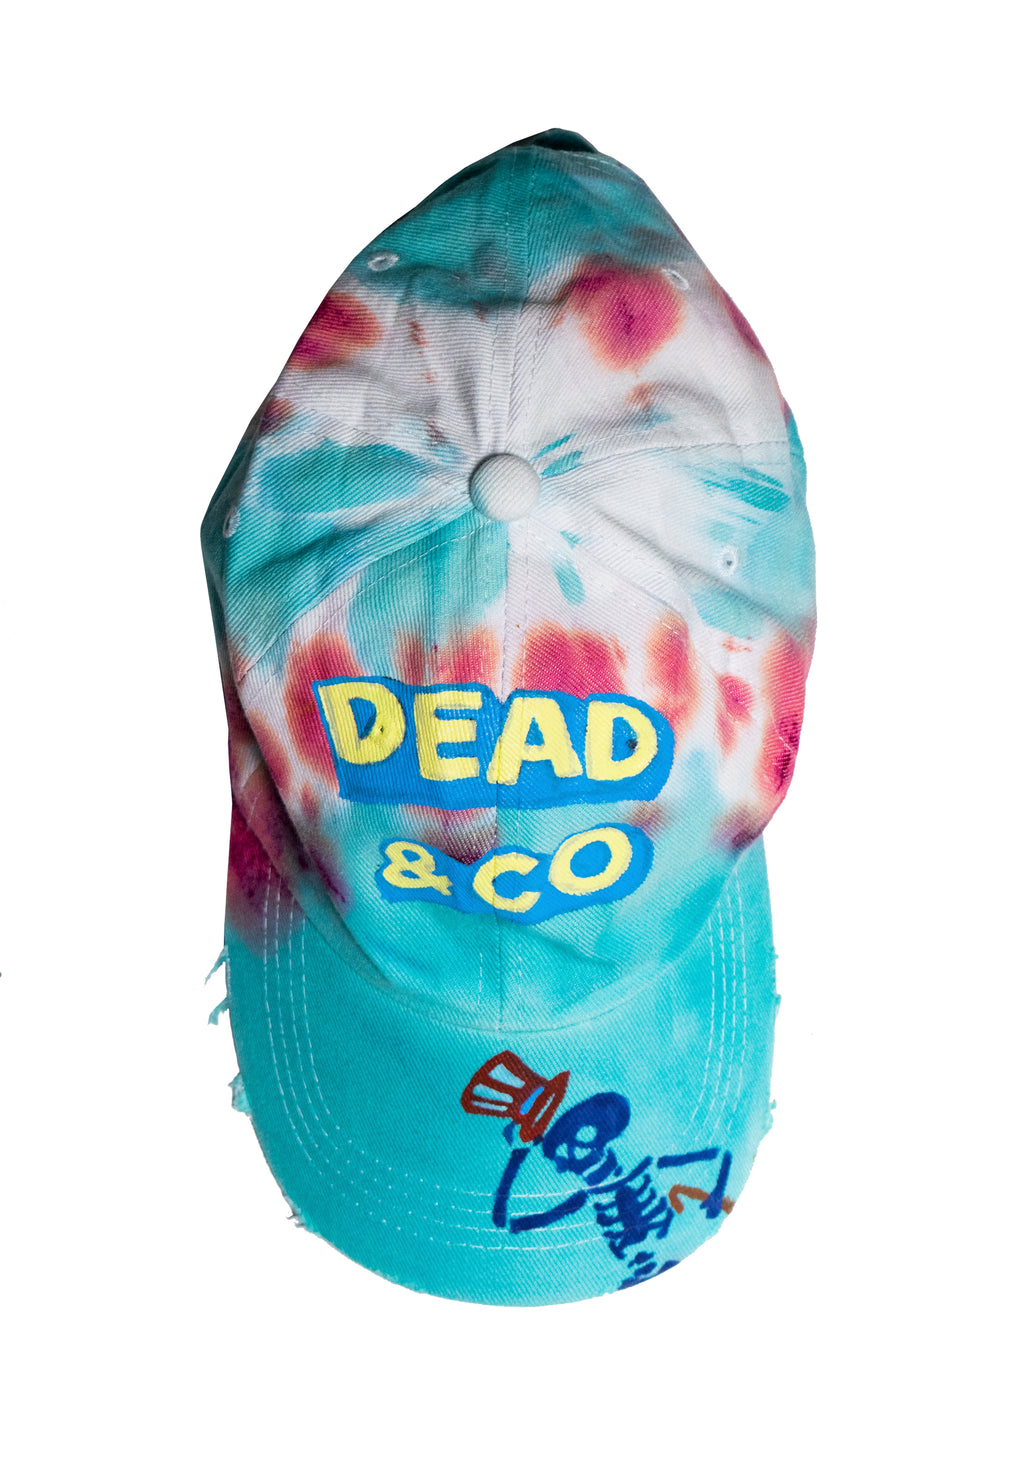 Baseball Cap, Unisex, Tie Dye, Dead & Co Skeleton